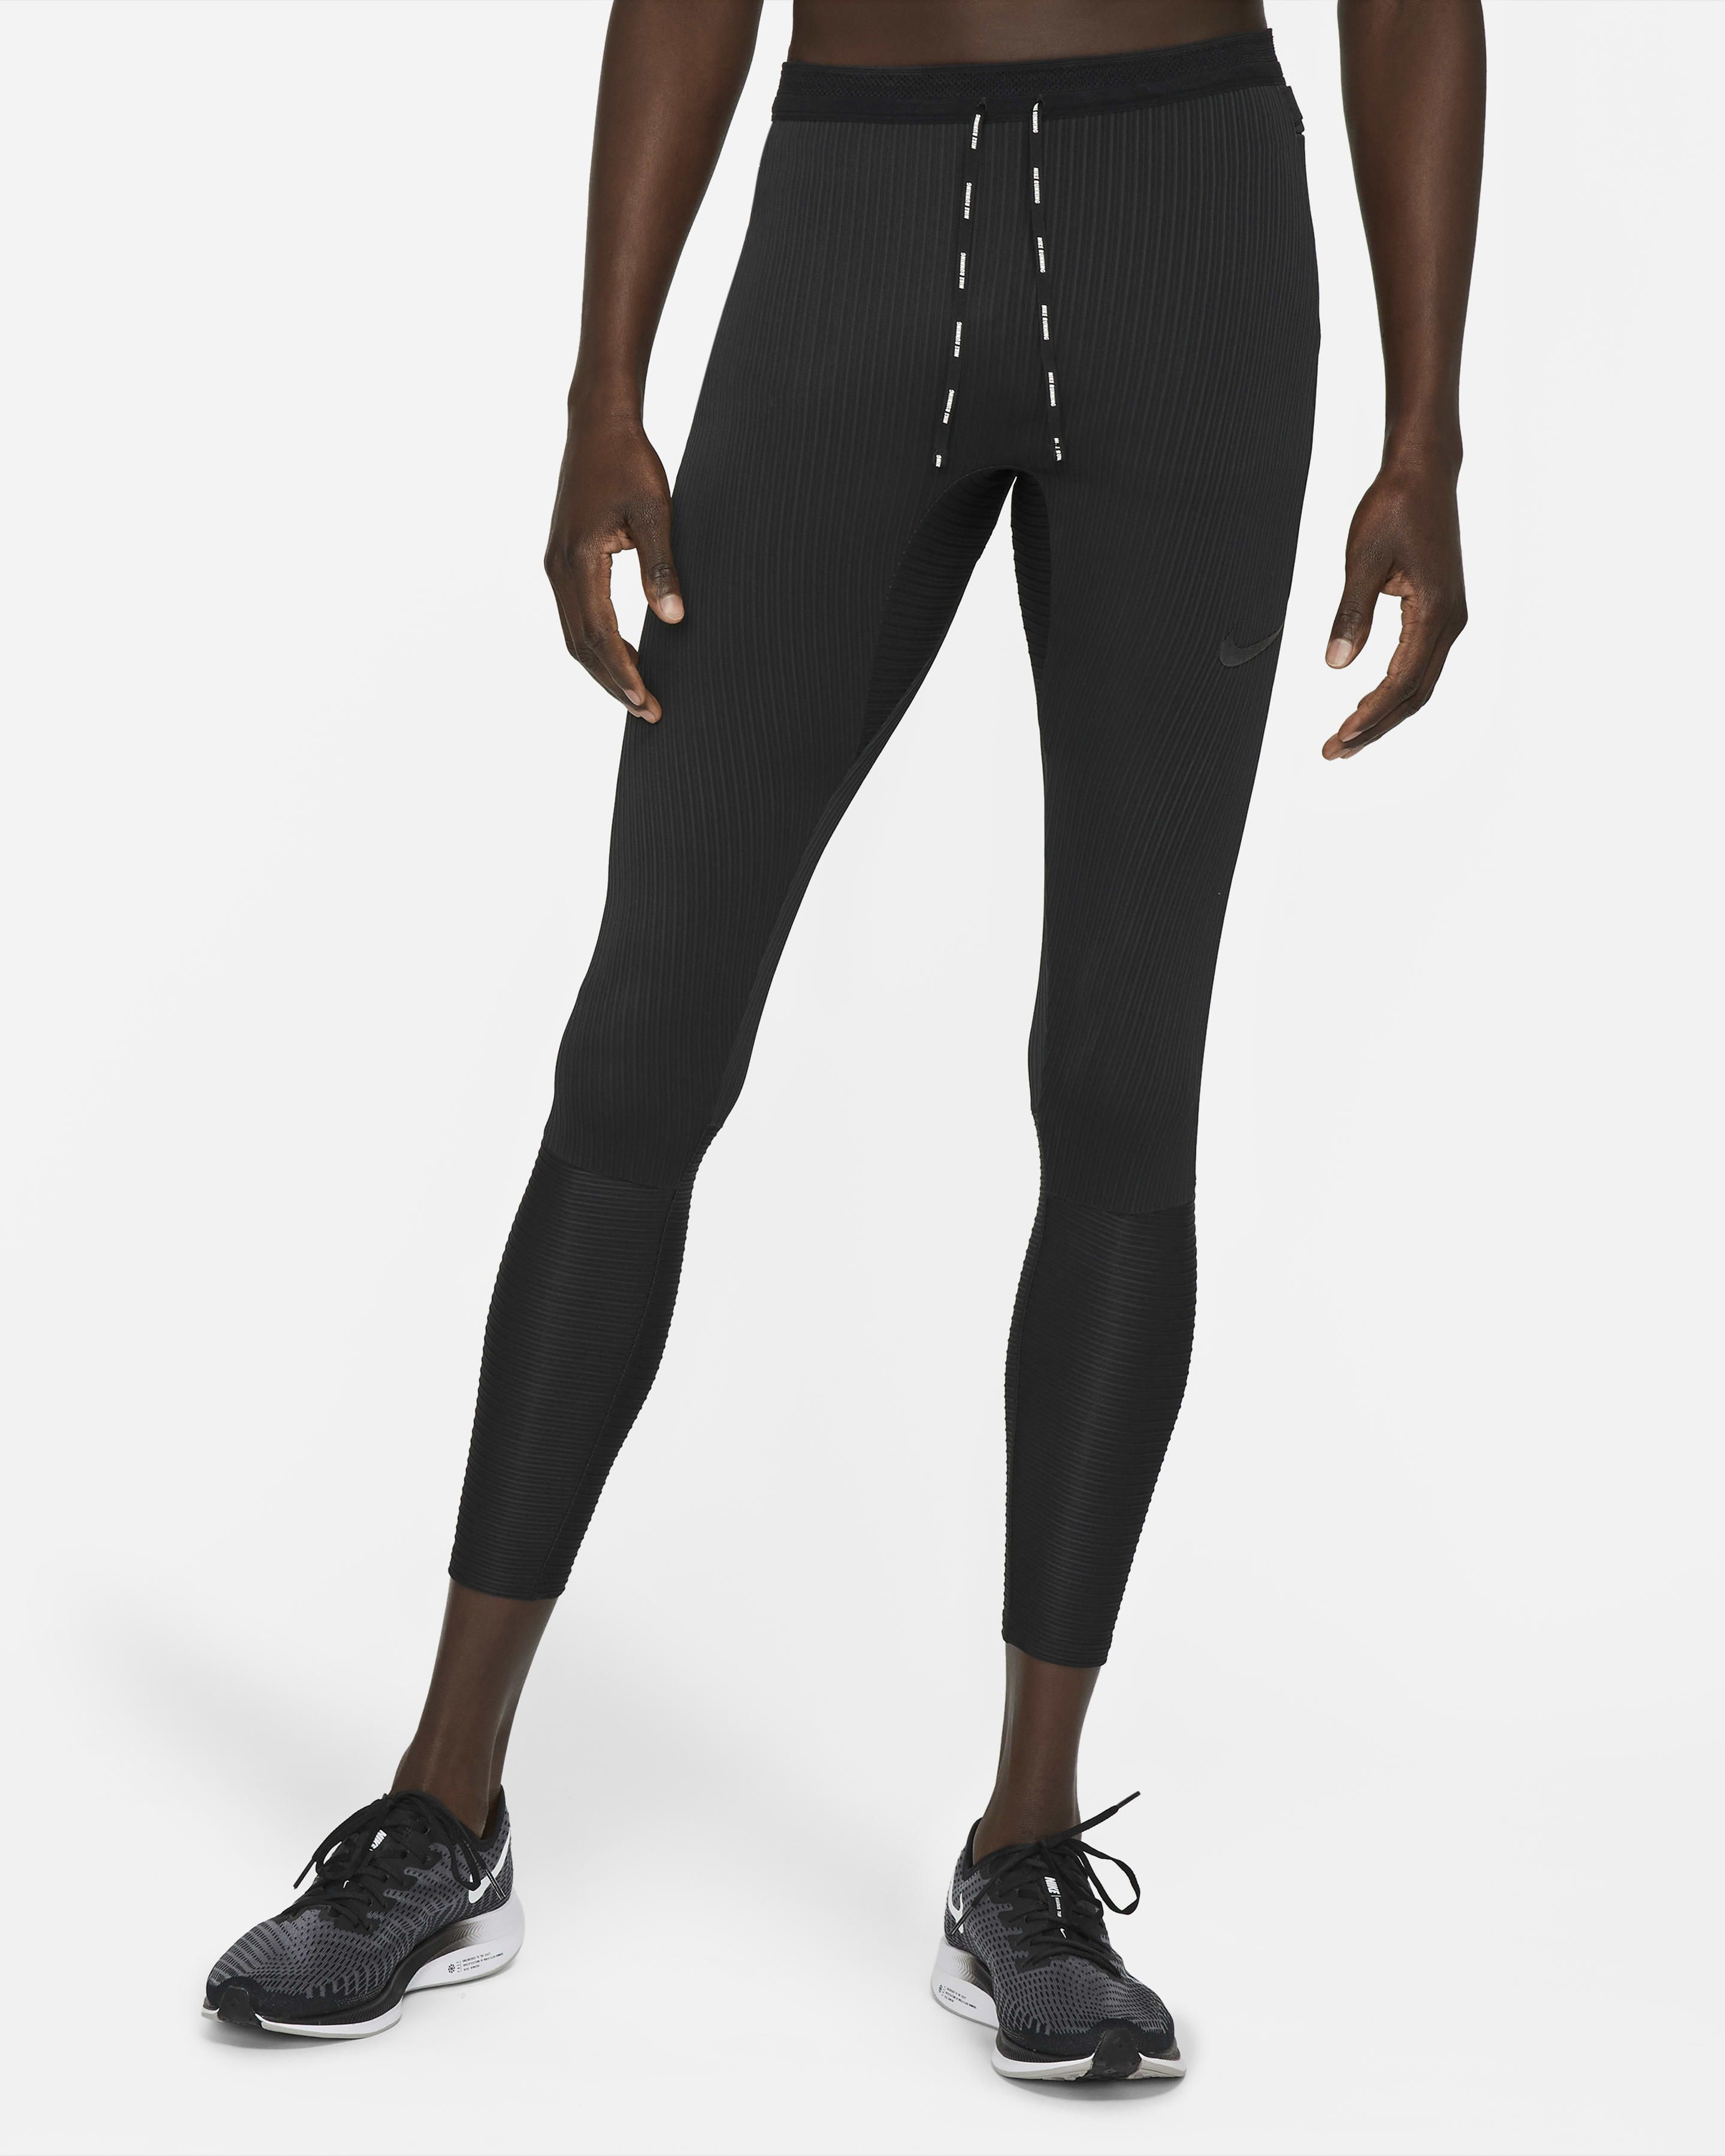 THE II BRO Compression Pants Men with Pockets by RPM Reflective